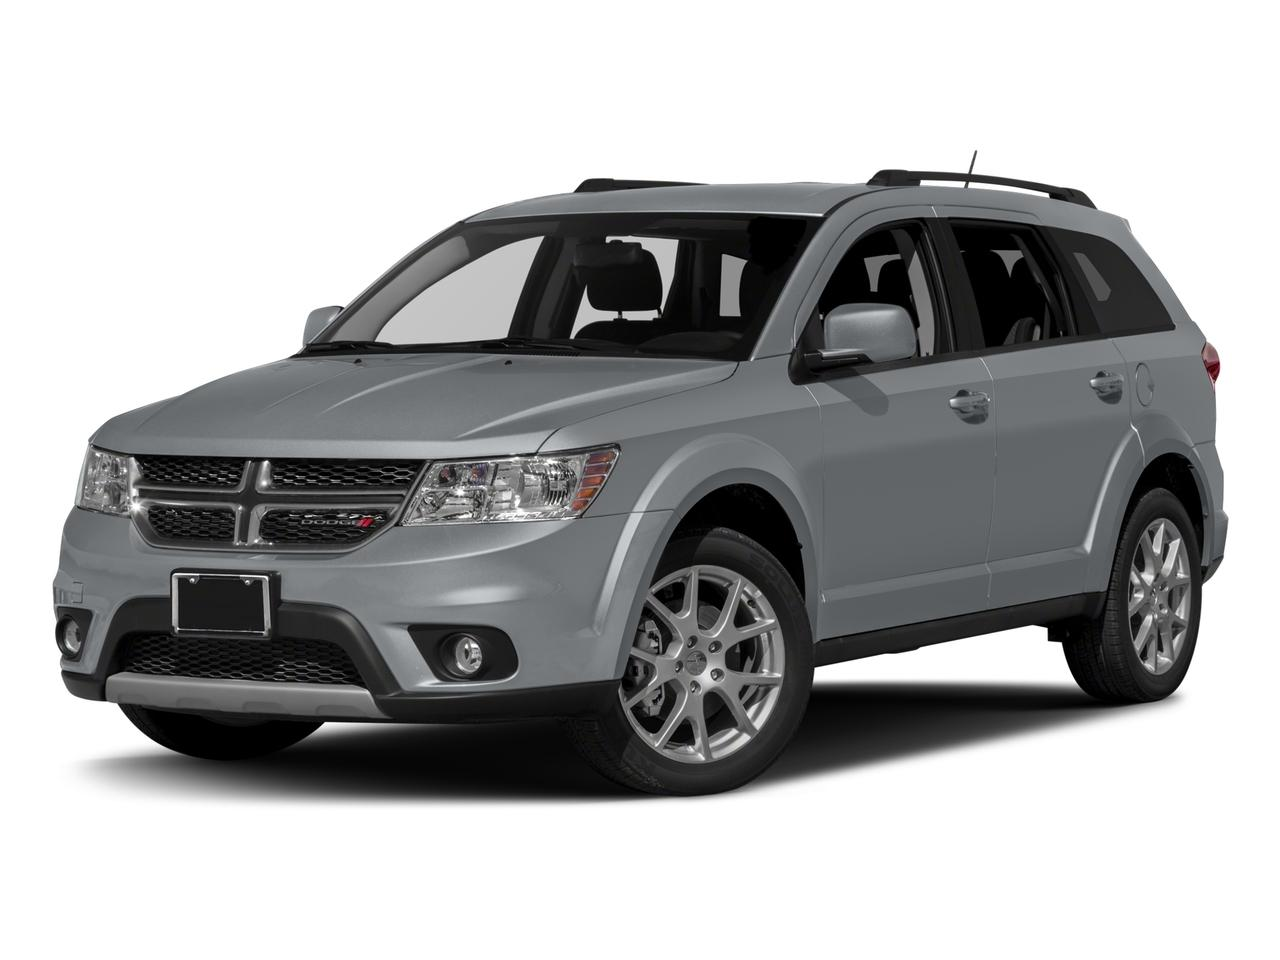 2017 Dodge Journey Vehicle Photo in Chickasha, OK 73018